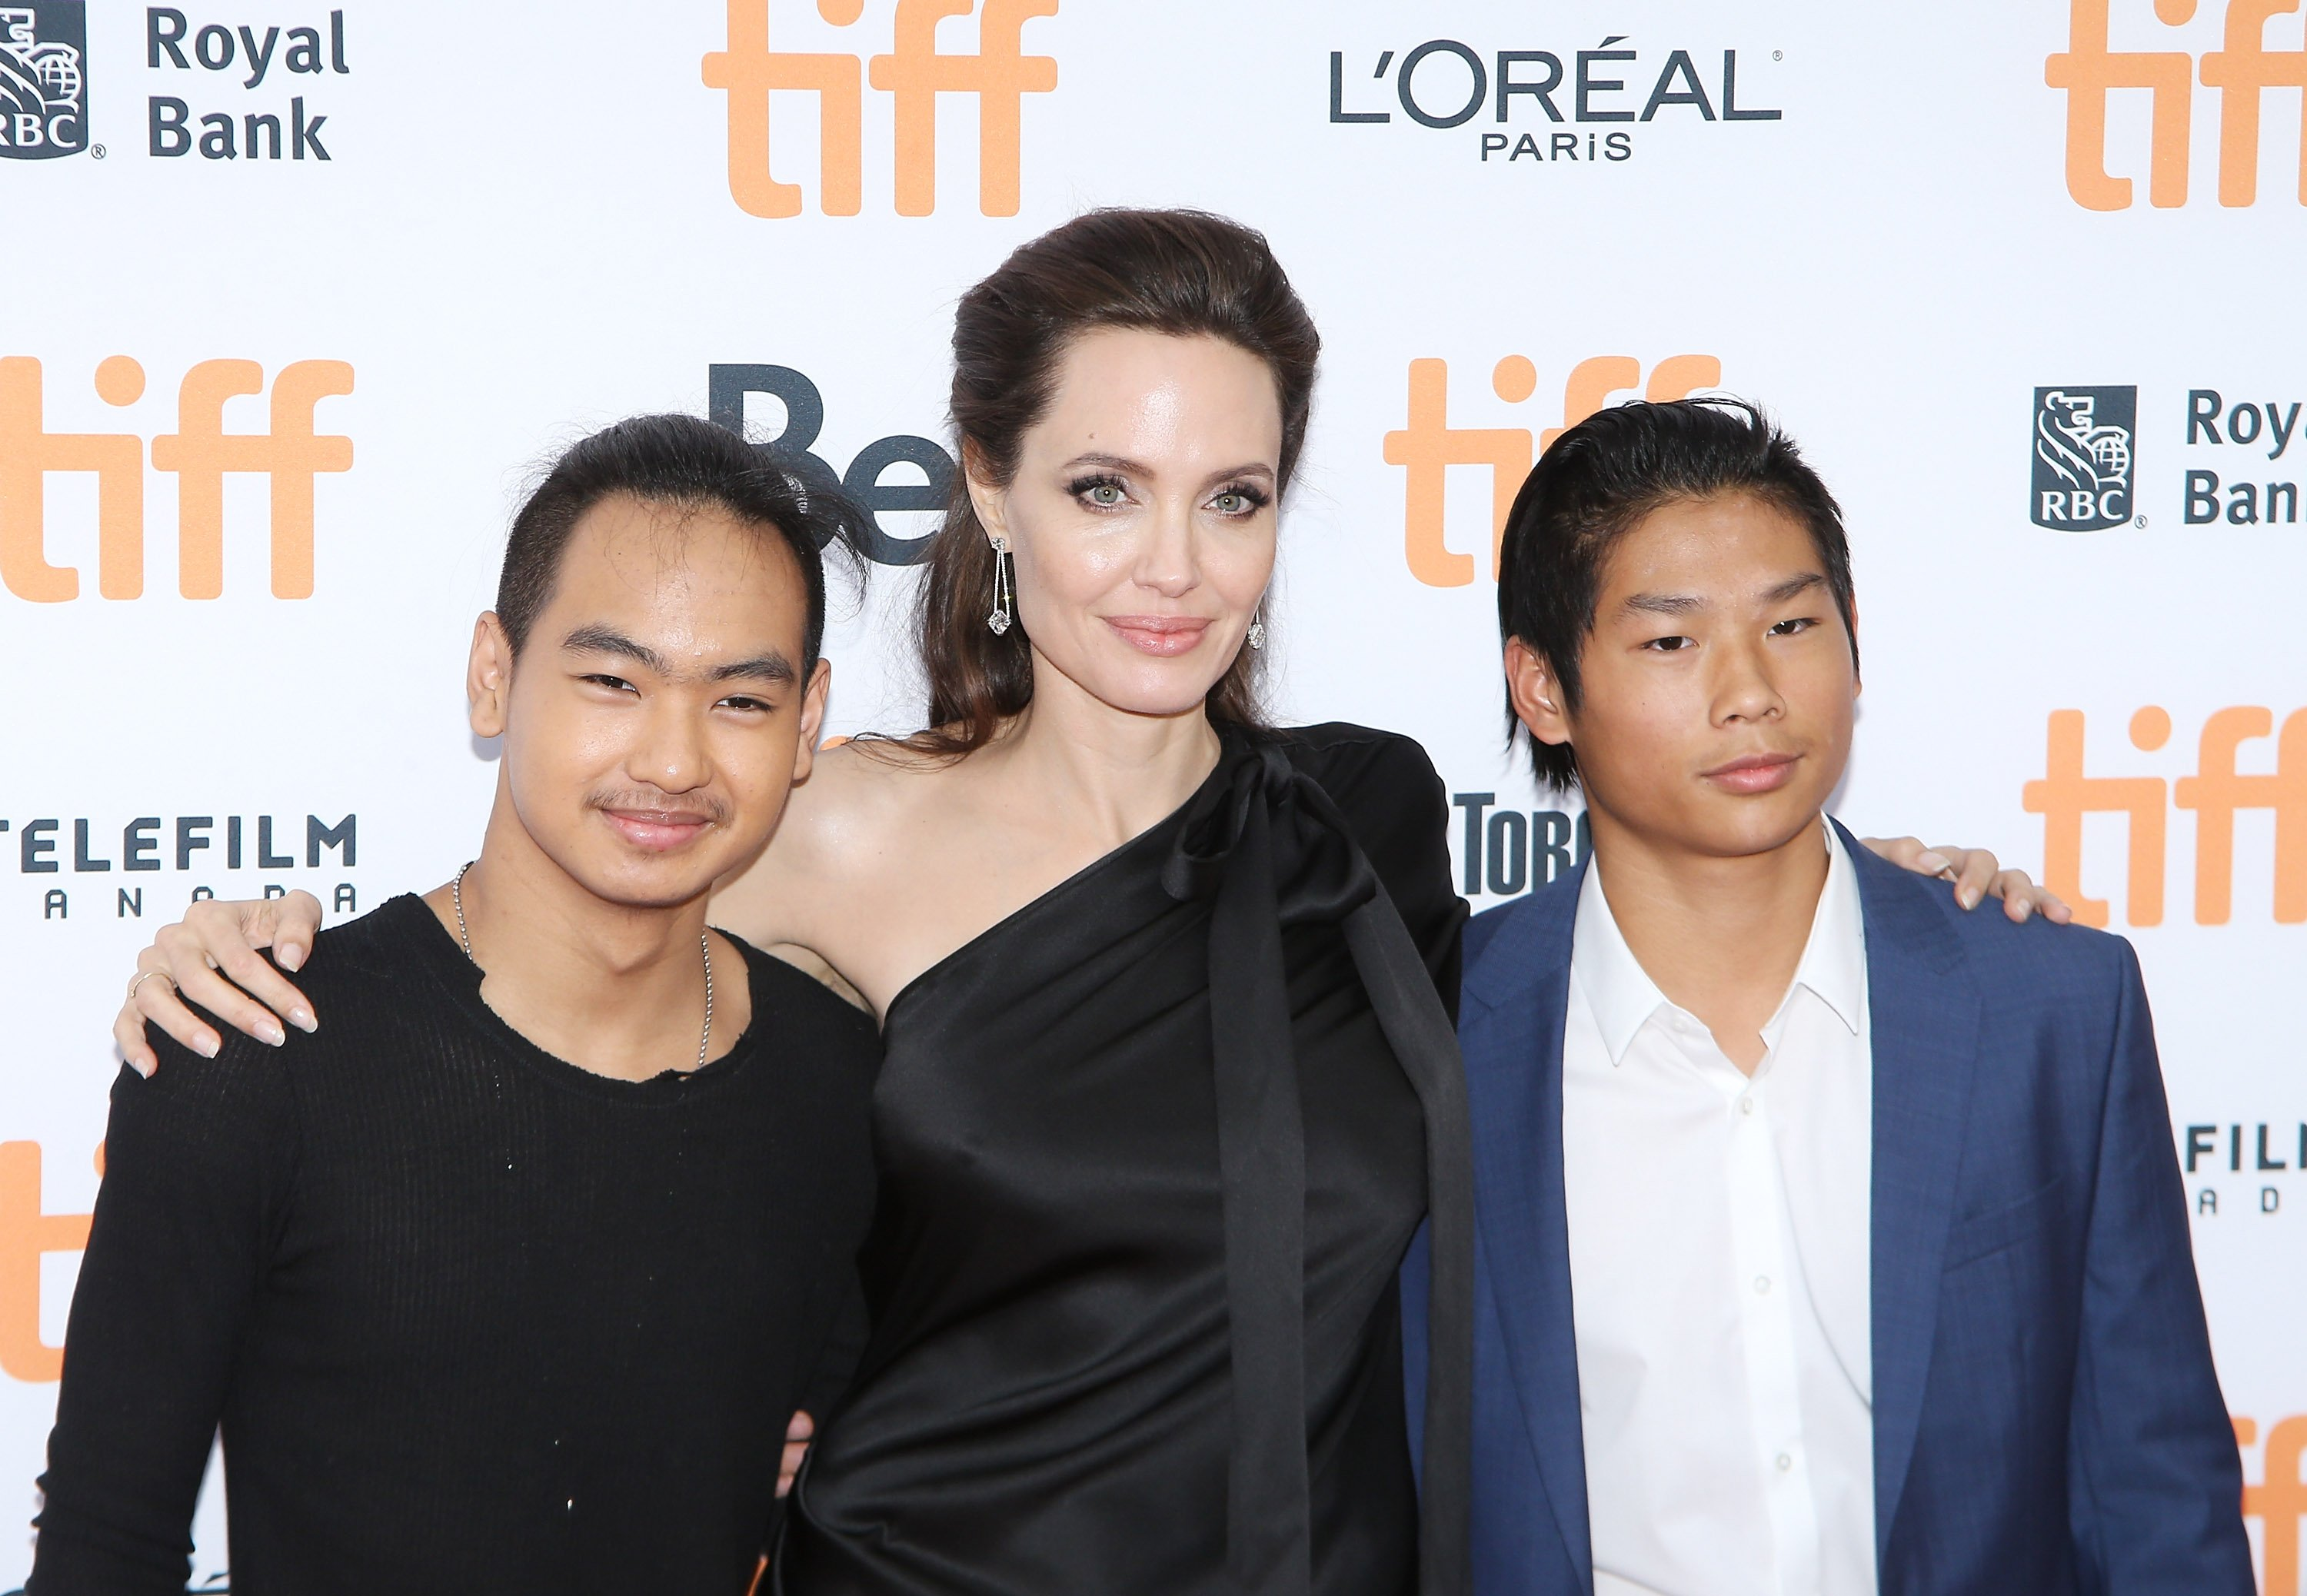 Image Credit: Getty Images/Michael Tran | Angelina Jolie with her sons, Maddox Chivan Jolie-Pitt and Pax Thien Jolie-Pitt